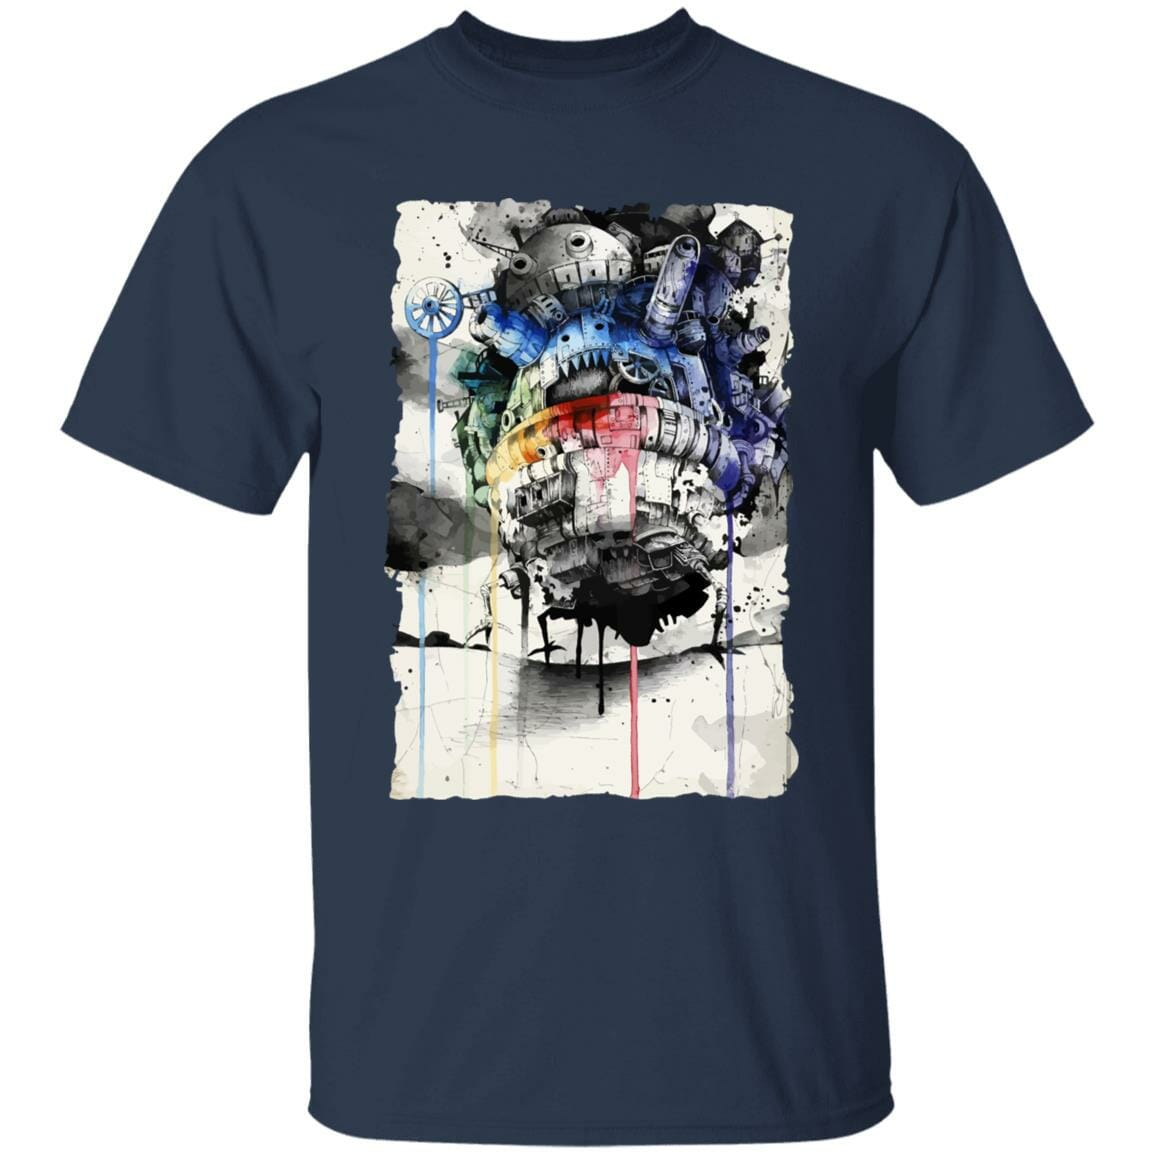 Howl's Moving Castle Impressionism T Shirt